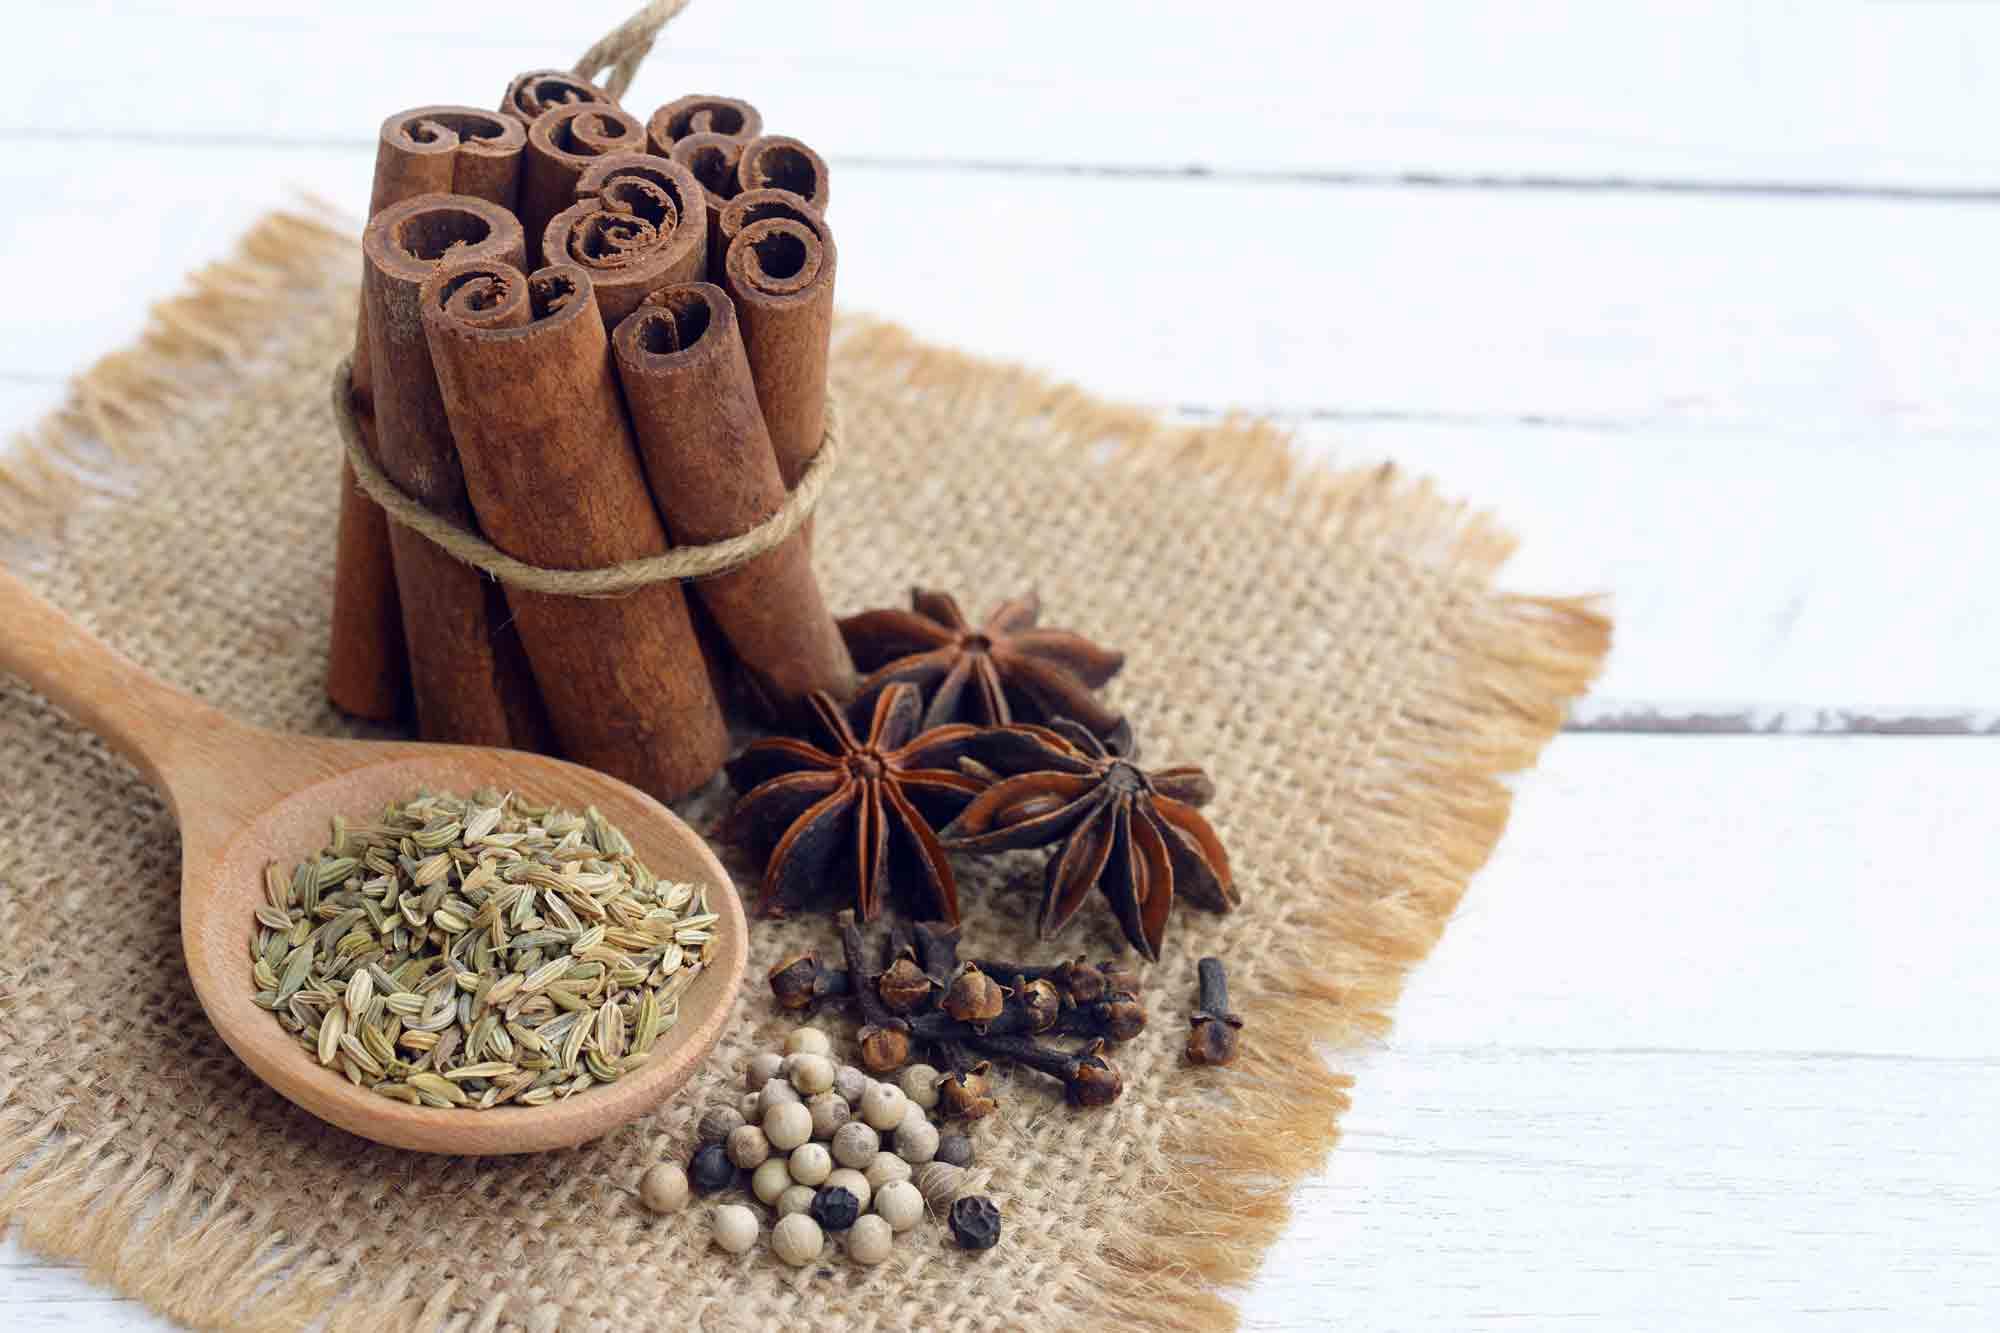 Five brown spices